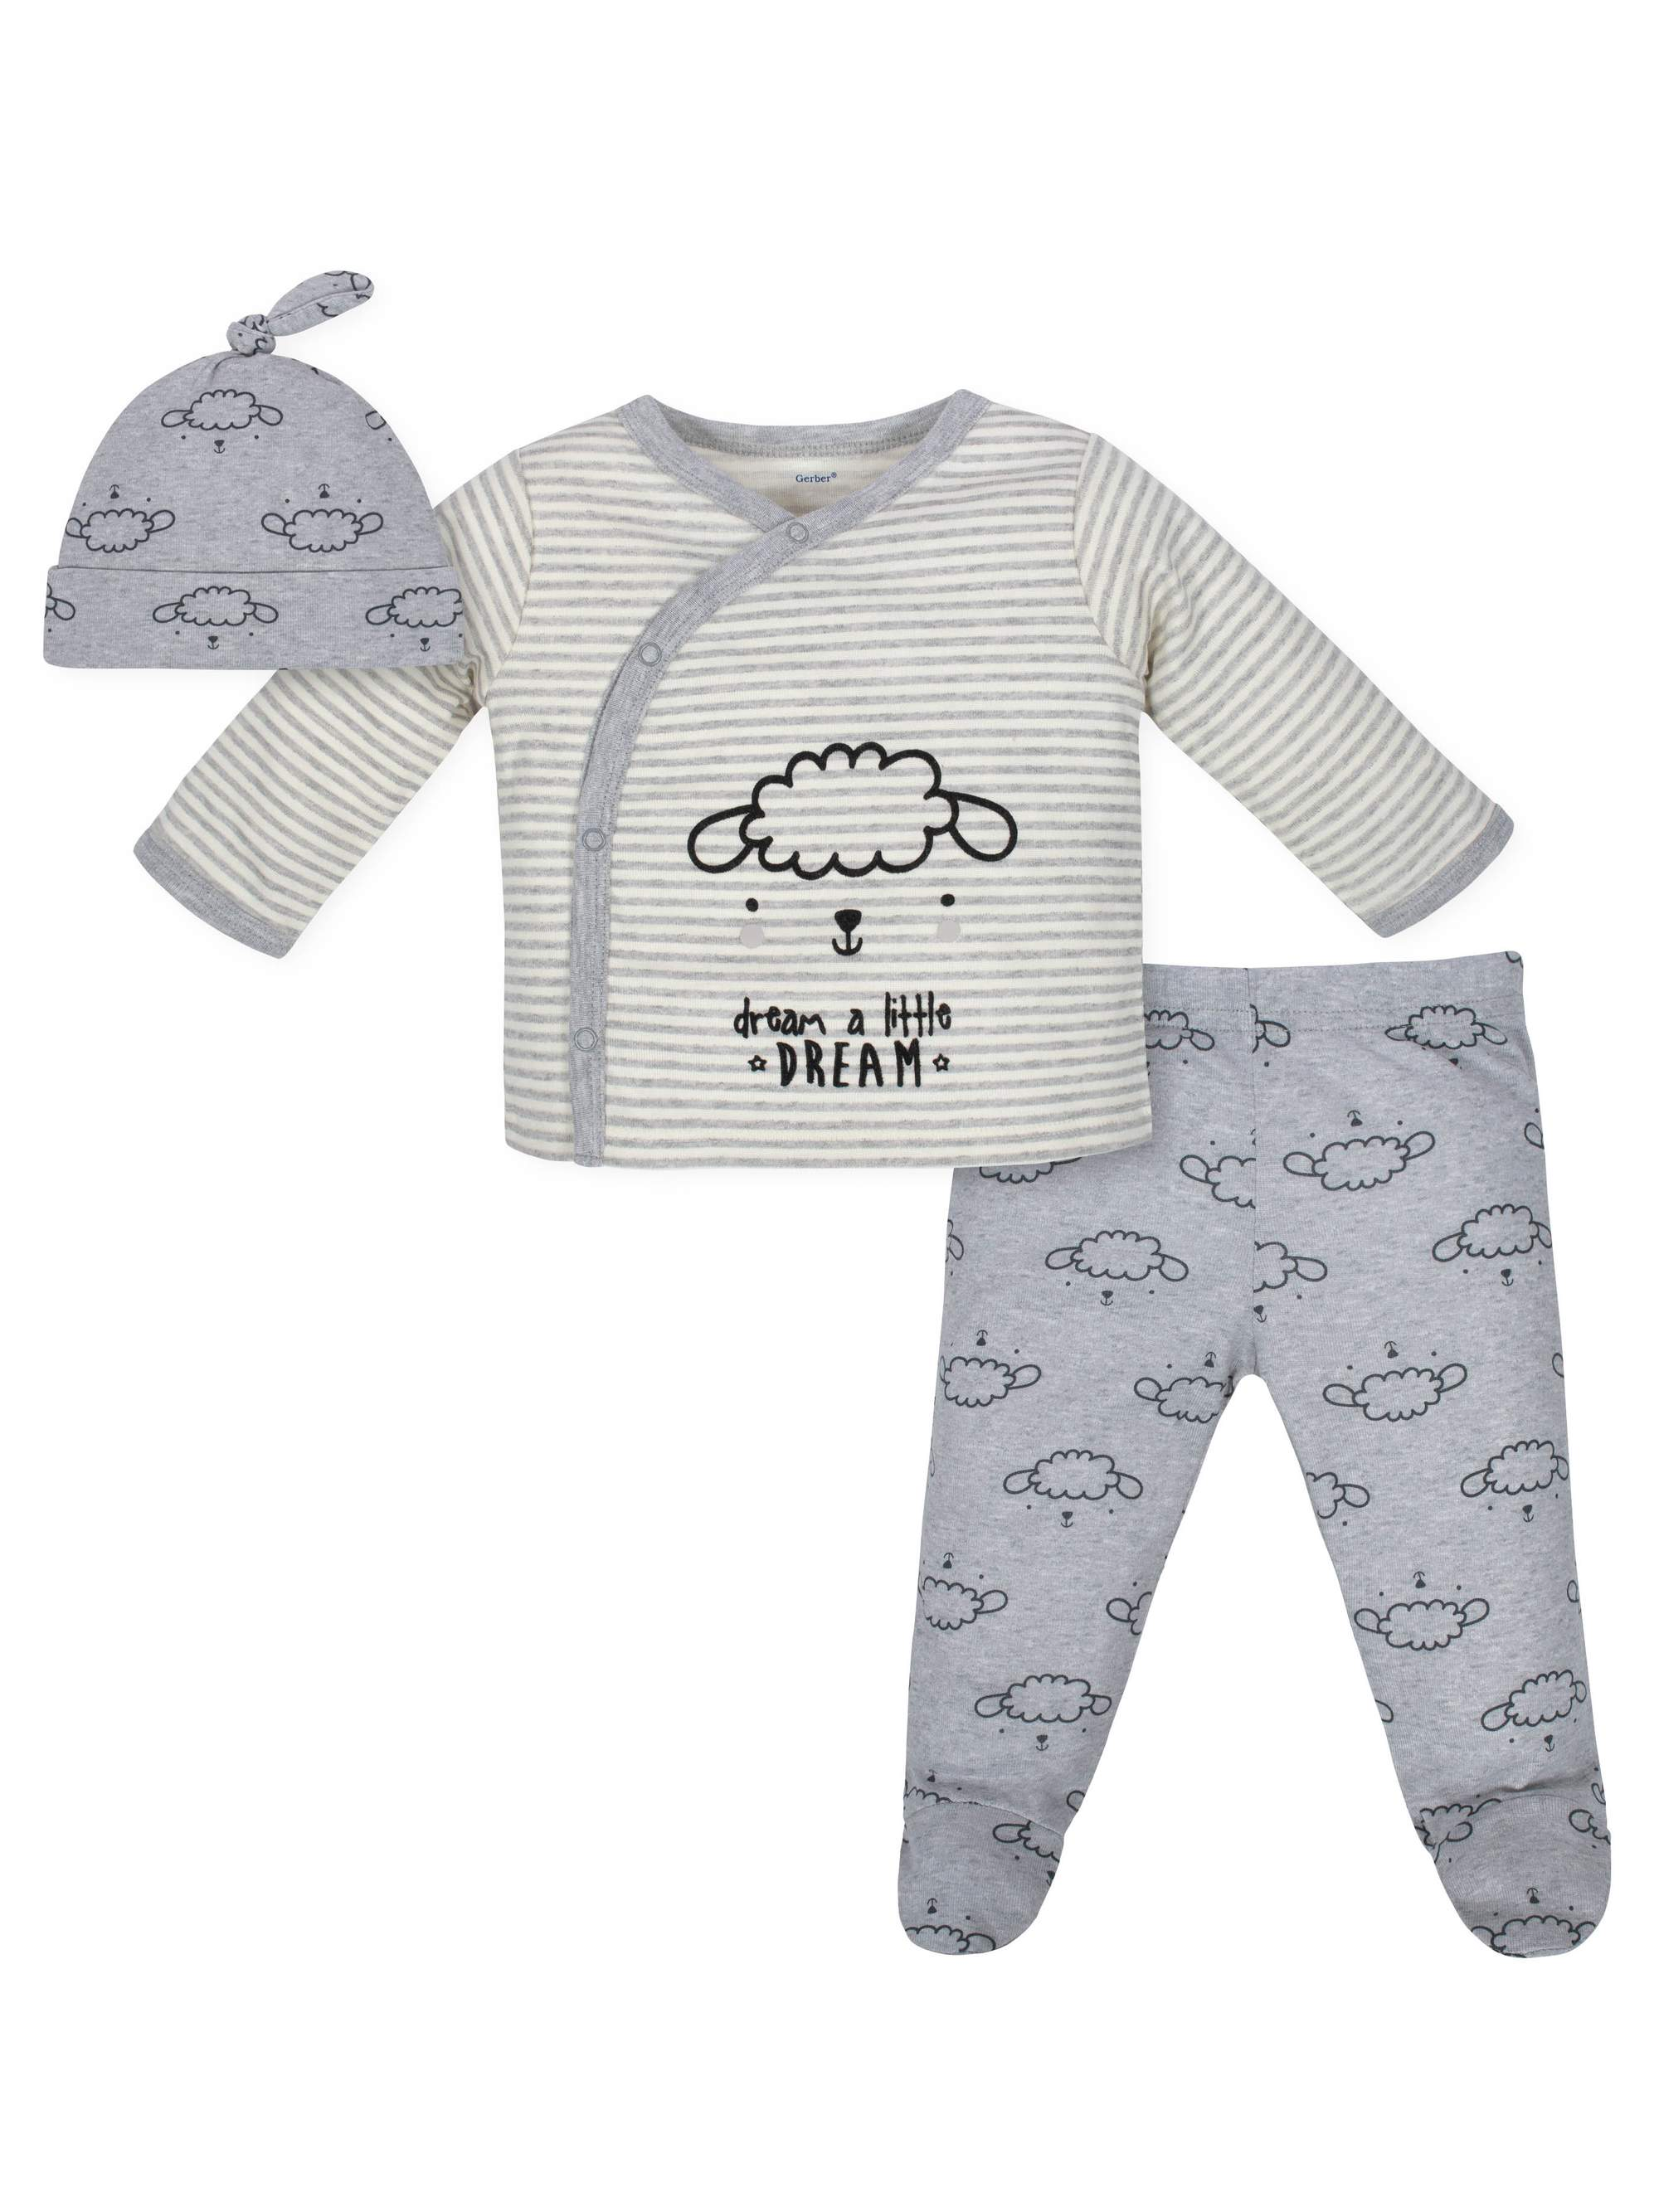 Take Me Home Shirt, Cap and Footed Pant Outfit Set, 3pc (Baby Boys or Baby Girls Unisex)